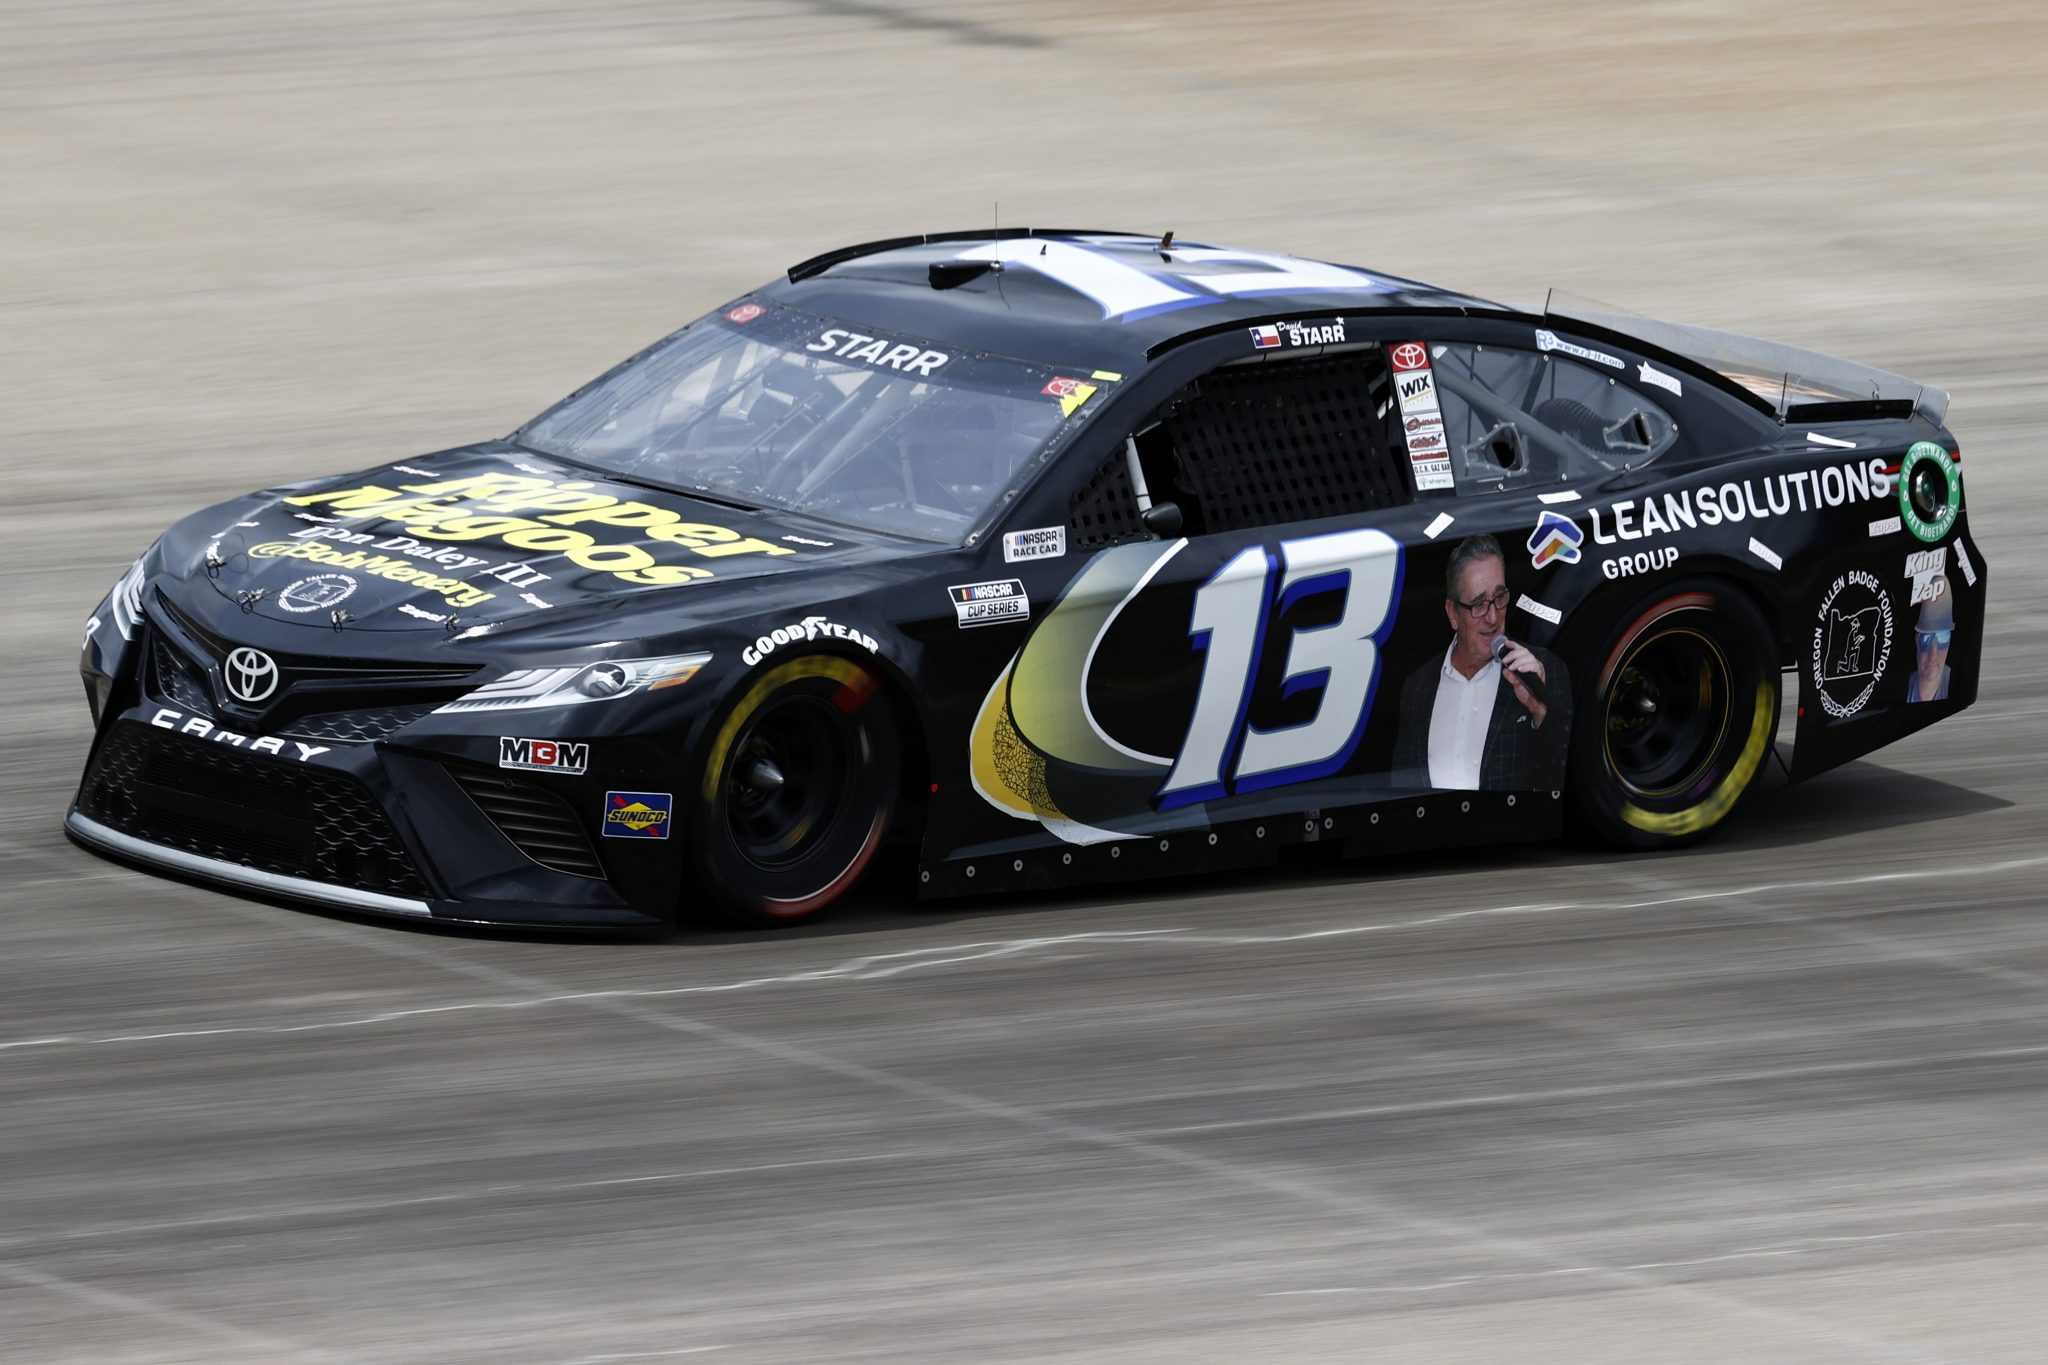 LEBANON, TENNESSEE - JUNE 19: David Starr, driver of the #13 Bob Menery Toyota, drives during practice for the NASCAR Cup Series Ally 400 at Nashville Superspeedway on June 19, 2021 in Lebanon, Tennessee. (Photo by Jared C. Tilton/Getty Images) | Getty Images